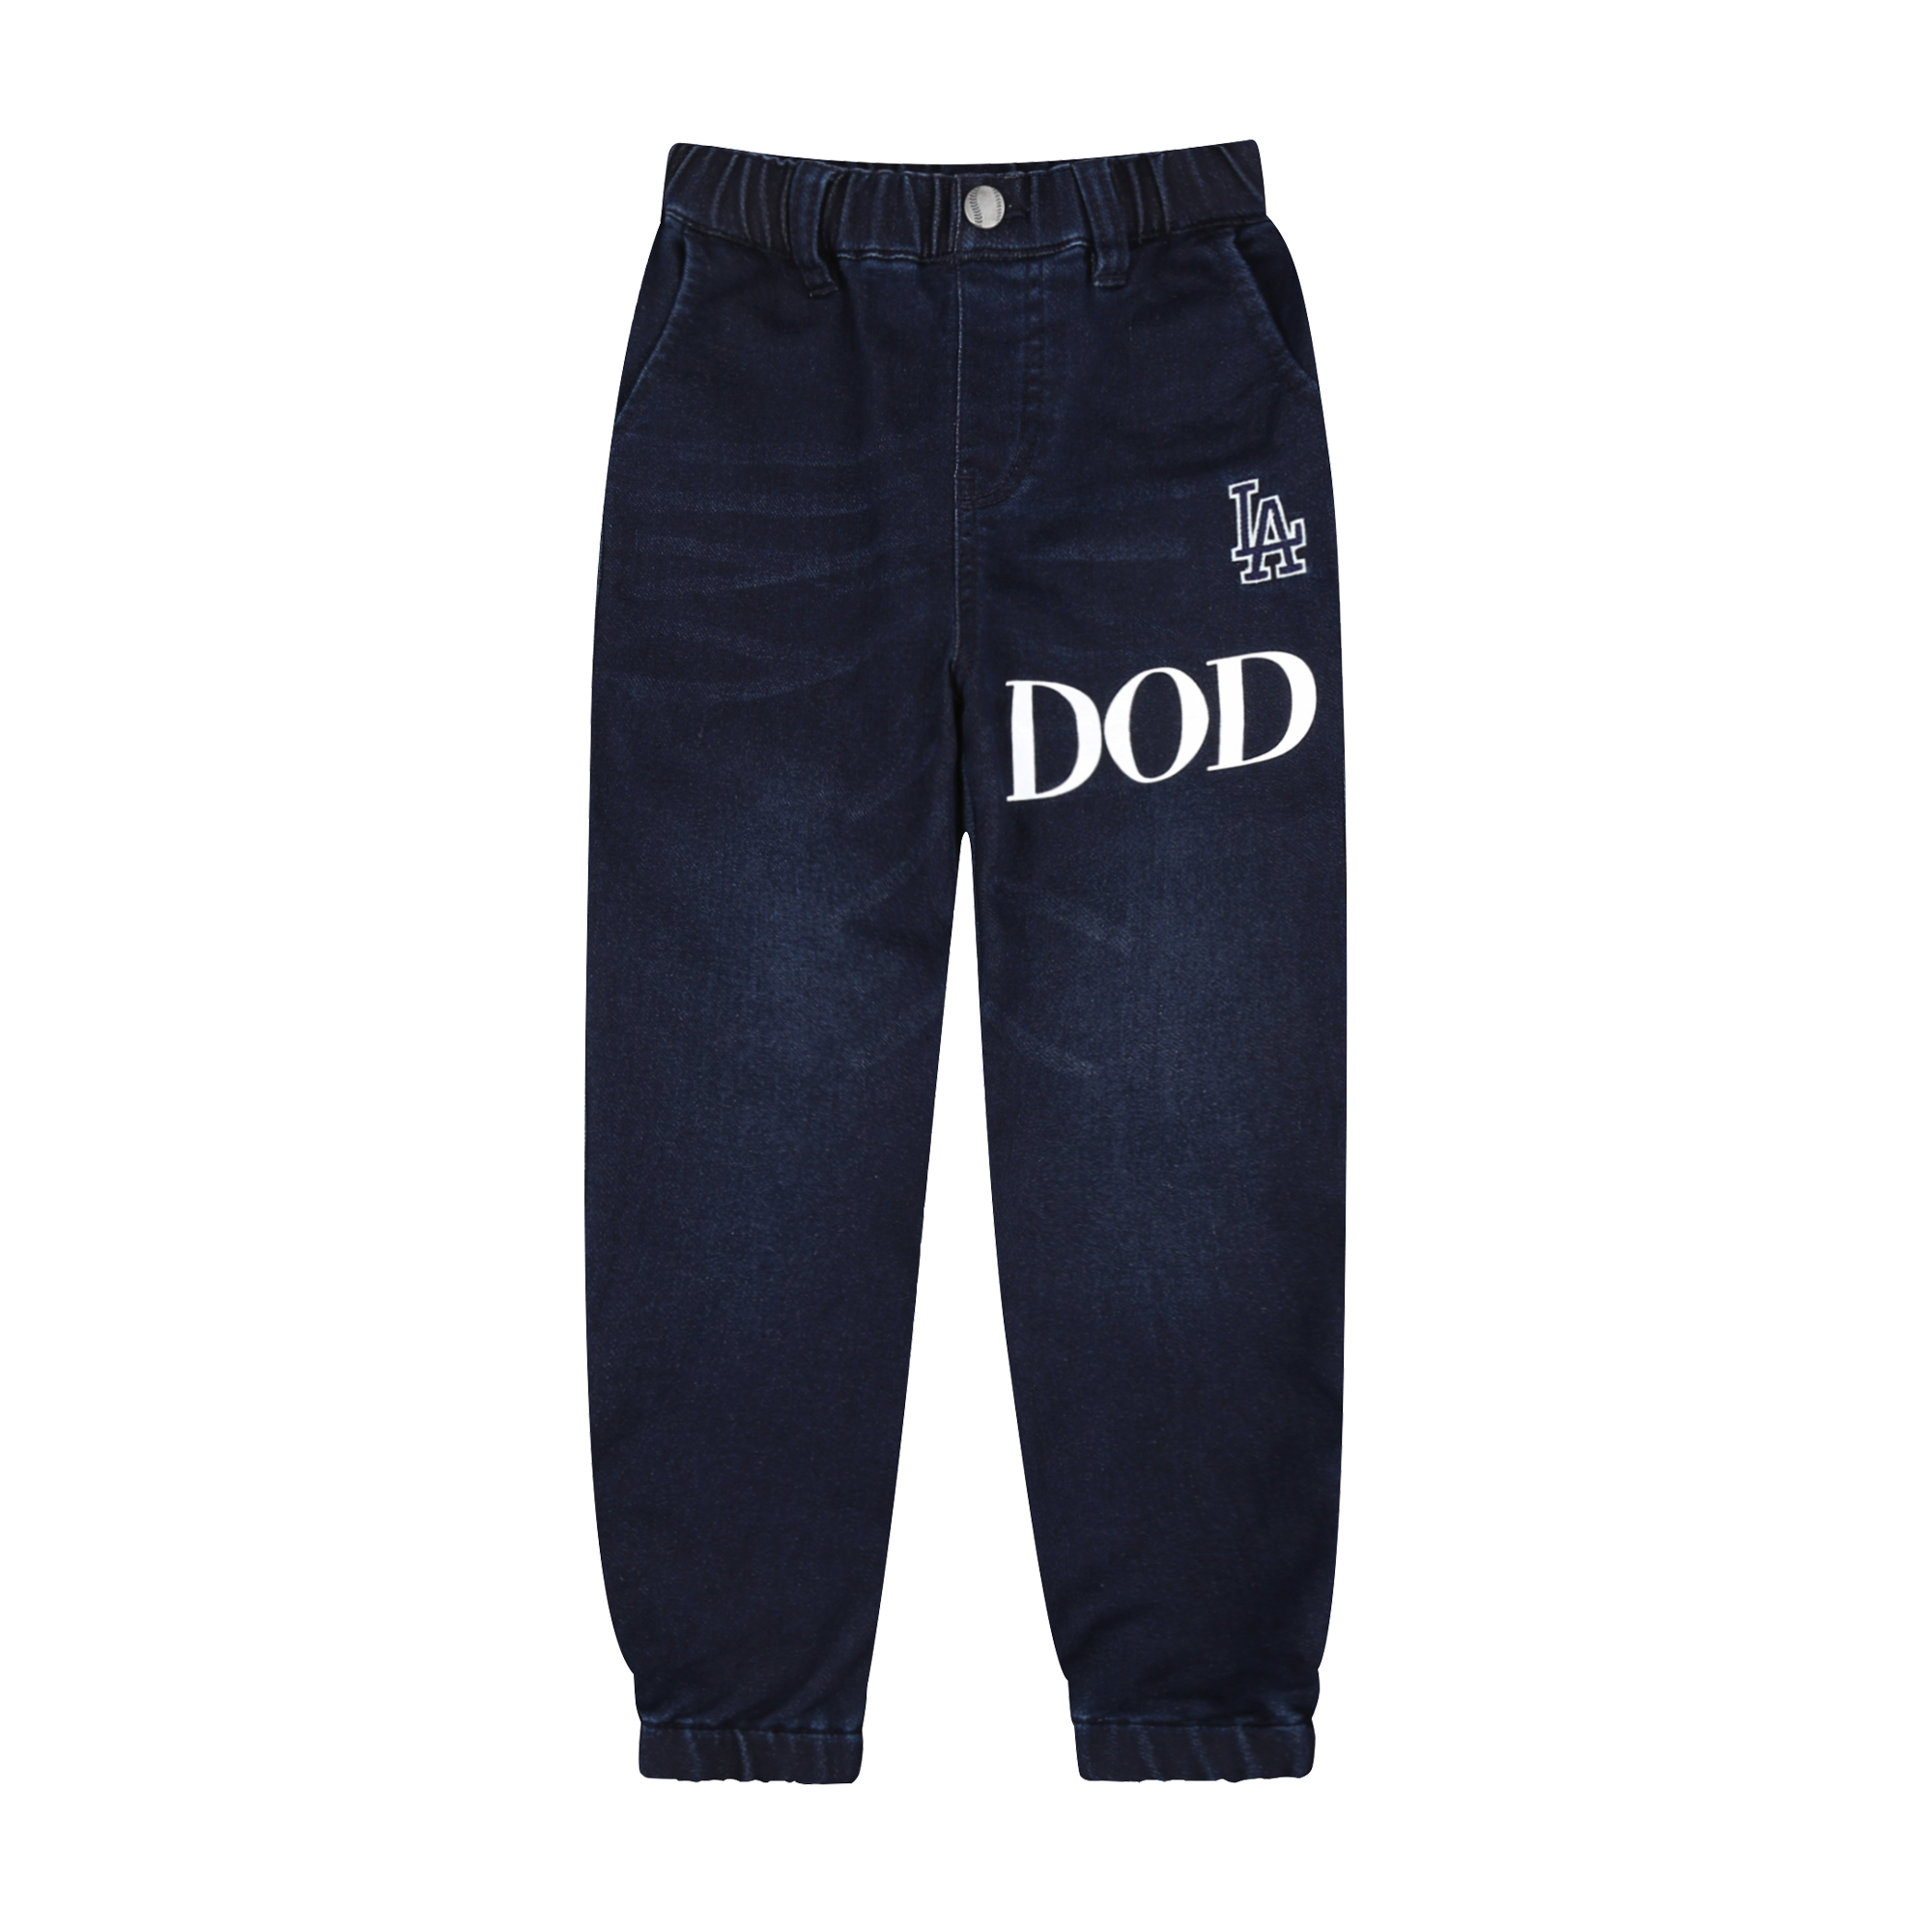 LA DODGERS UNISEX FRONT & BACK LOGO BAGGY FIT JOGGER DENIM PANTS